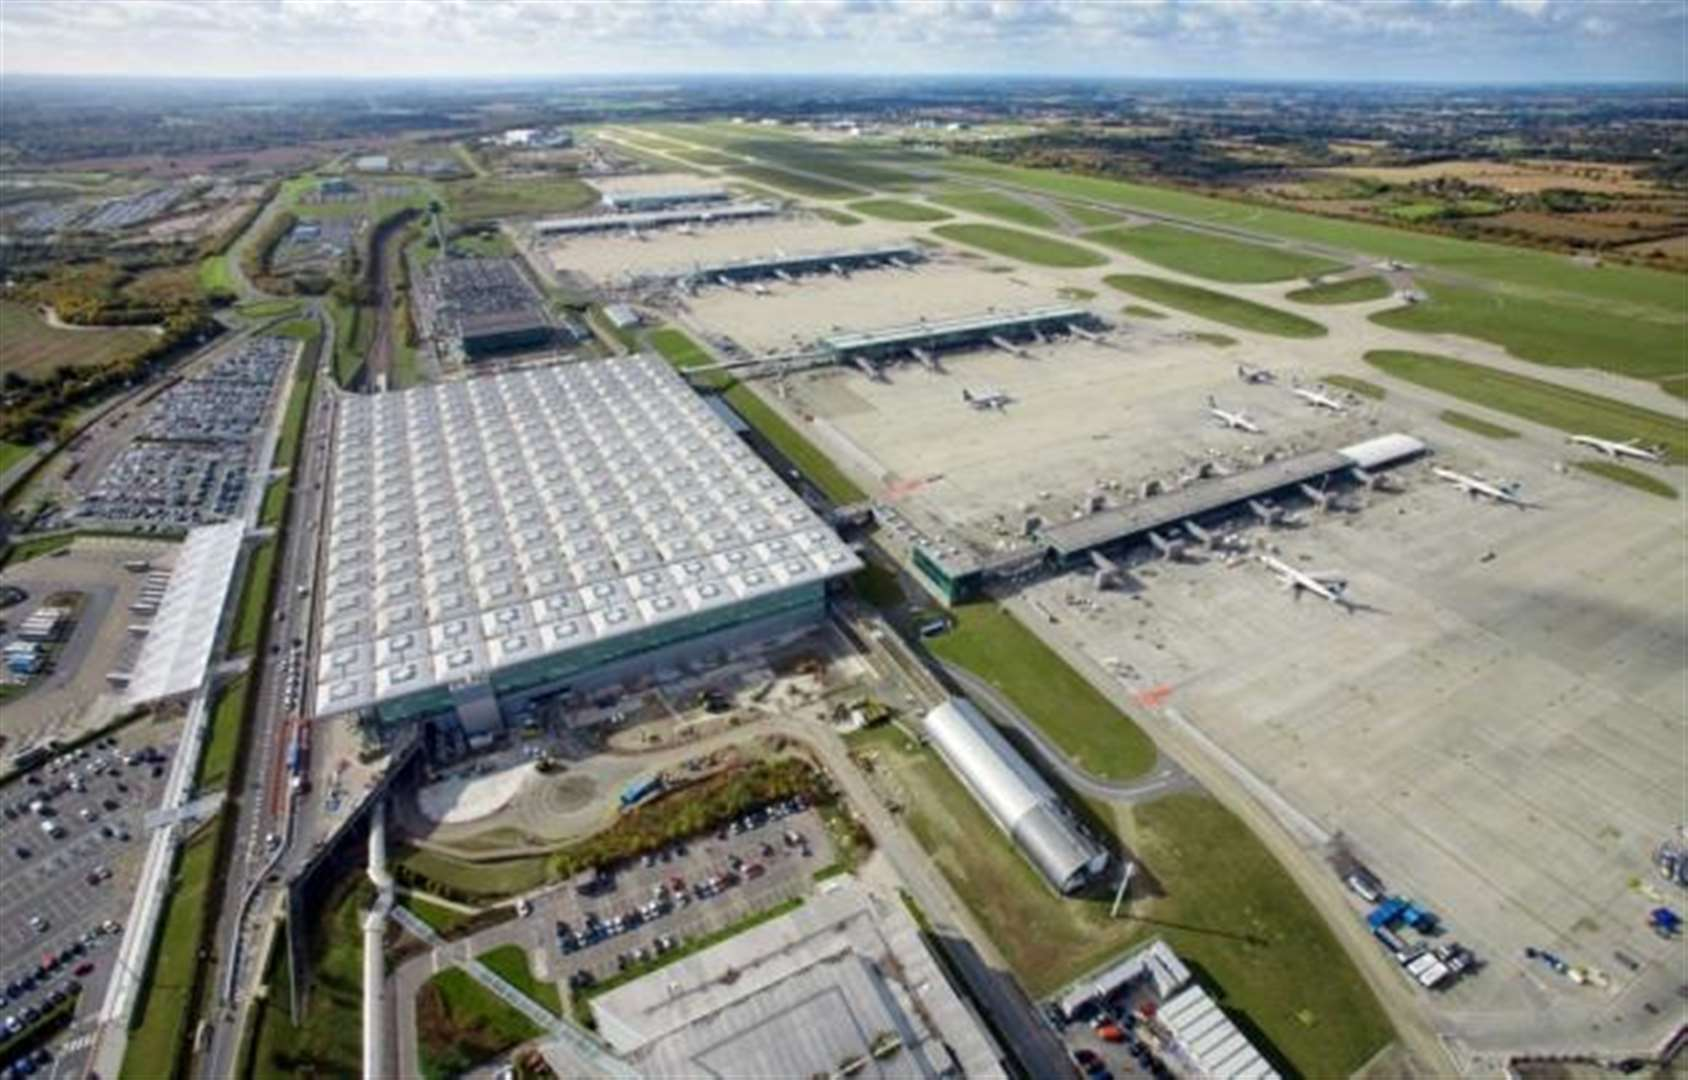 Stansted Airport bids for 66% increase in today's passenger numbers